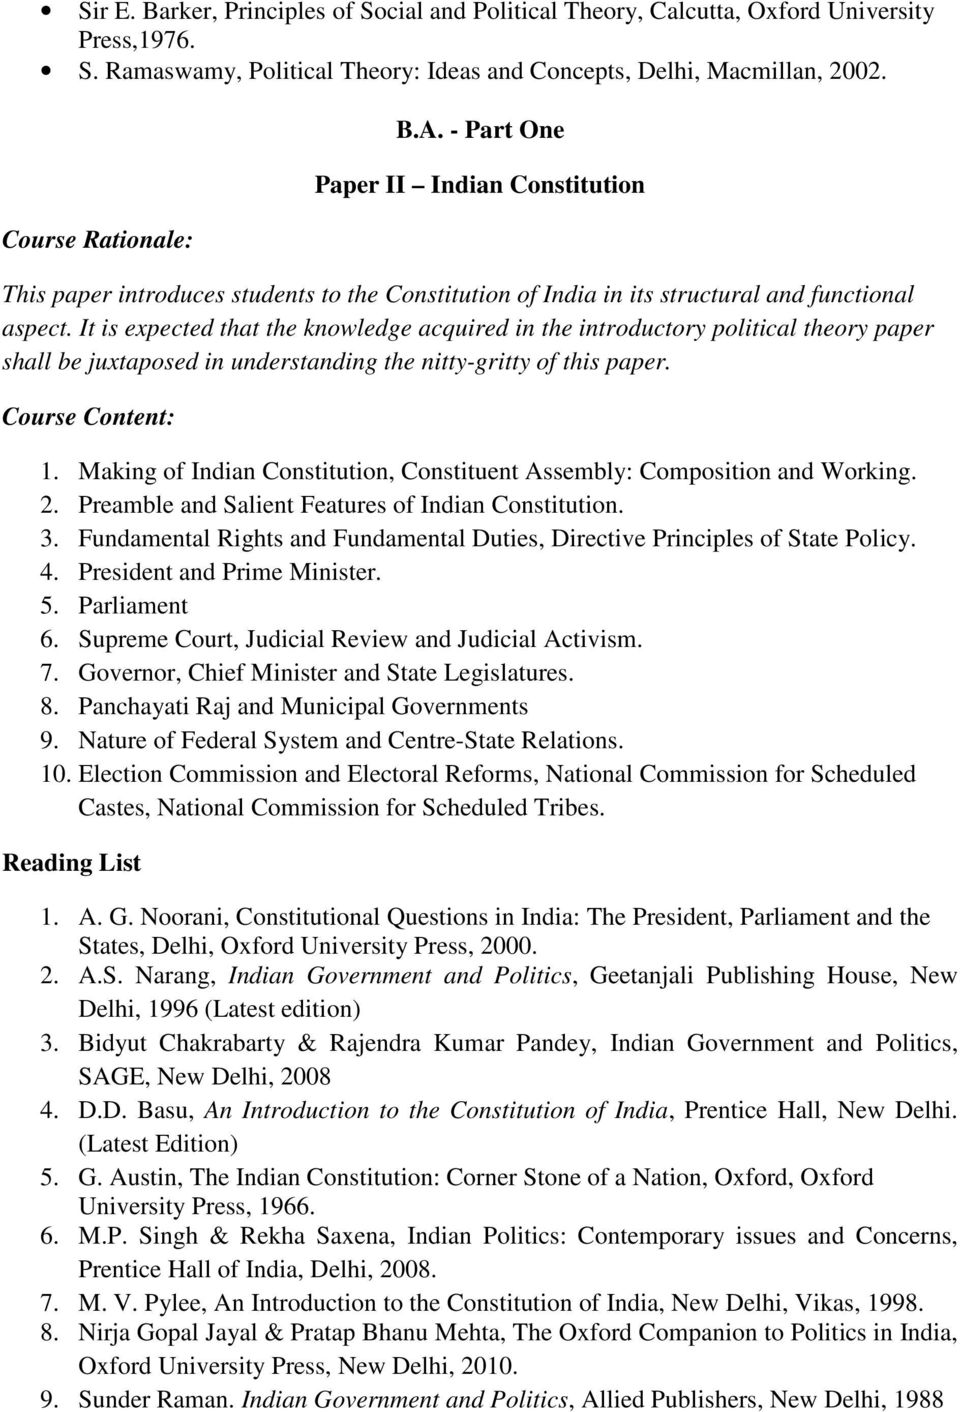 essay on preamble of n constitution  essay on preamble of the constitution essays